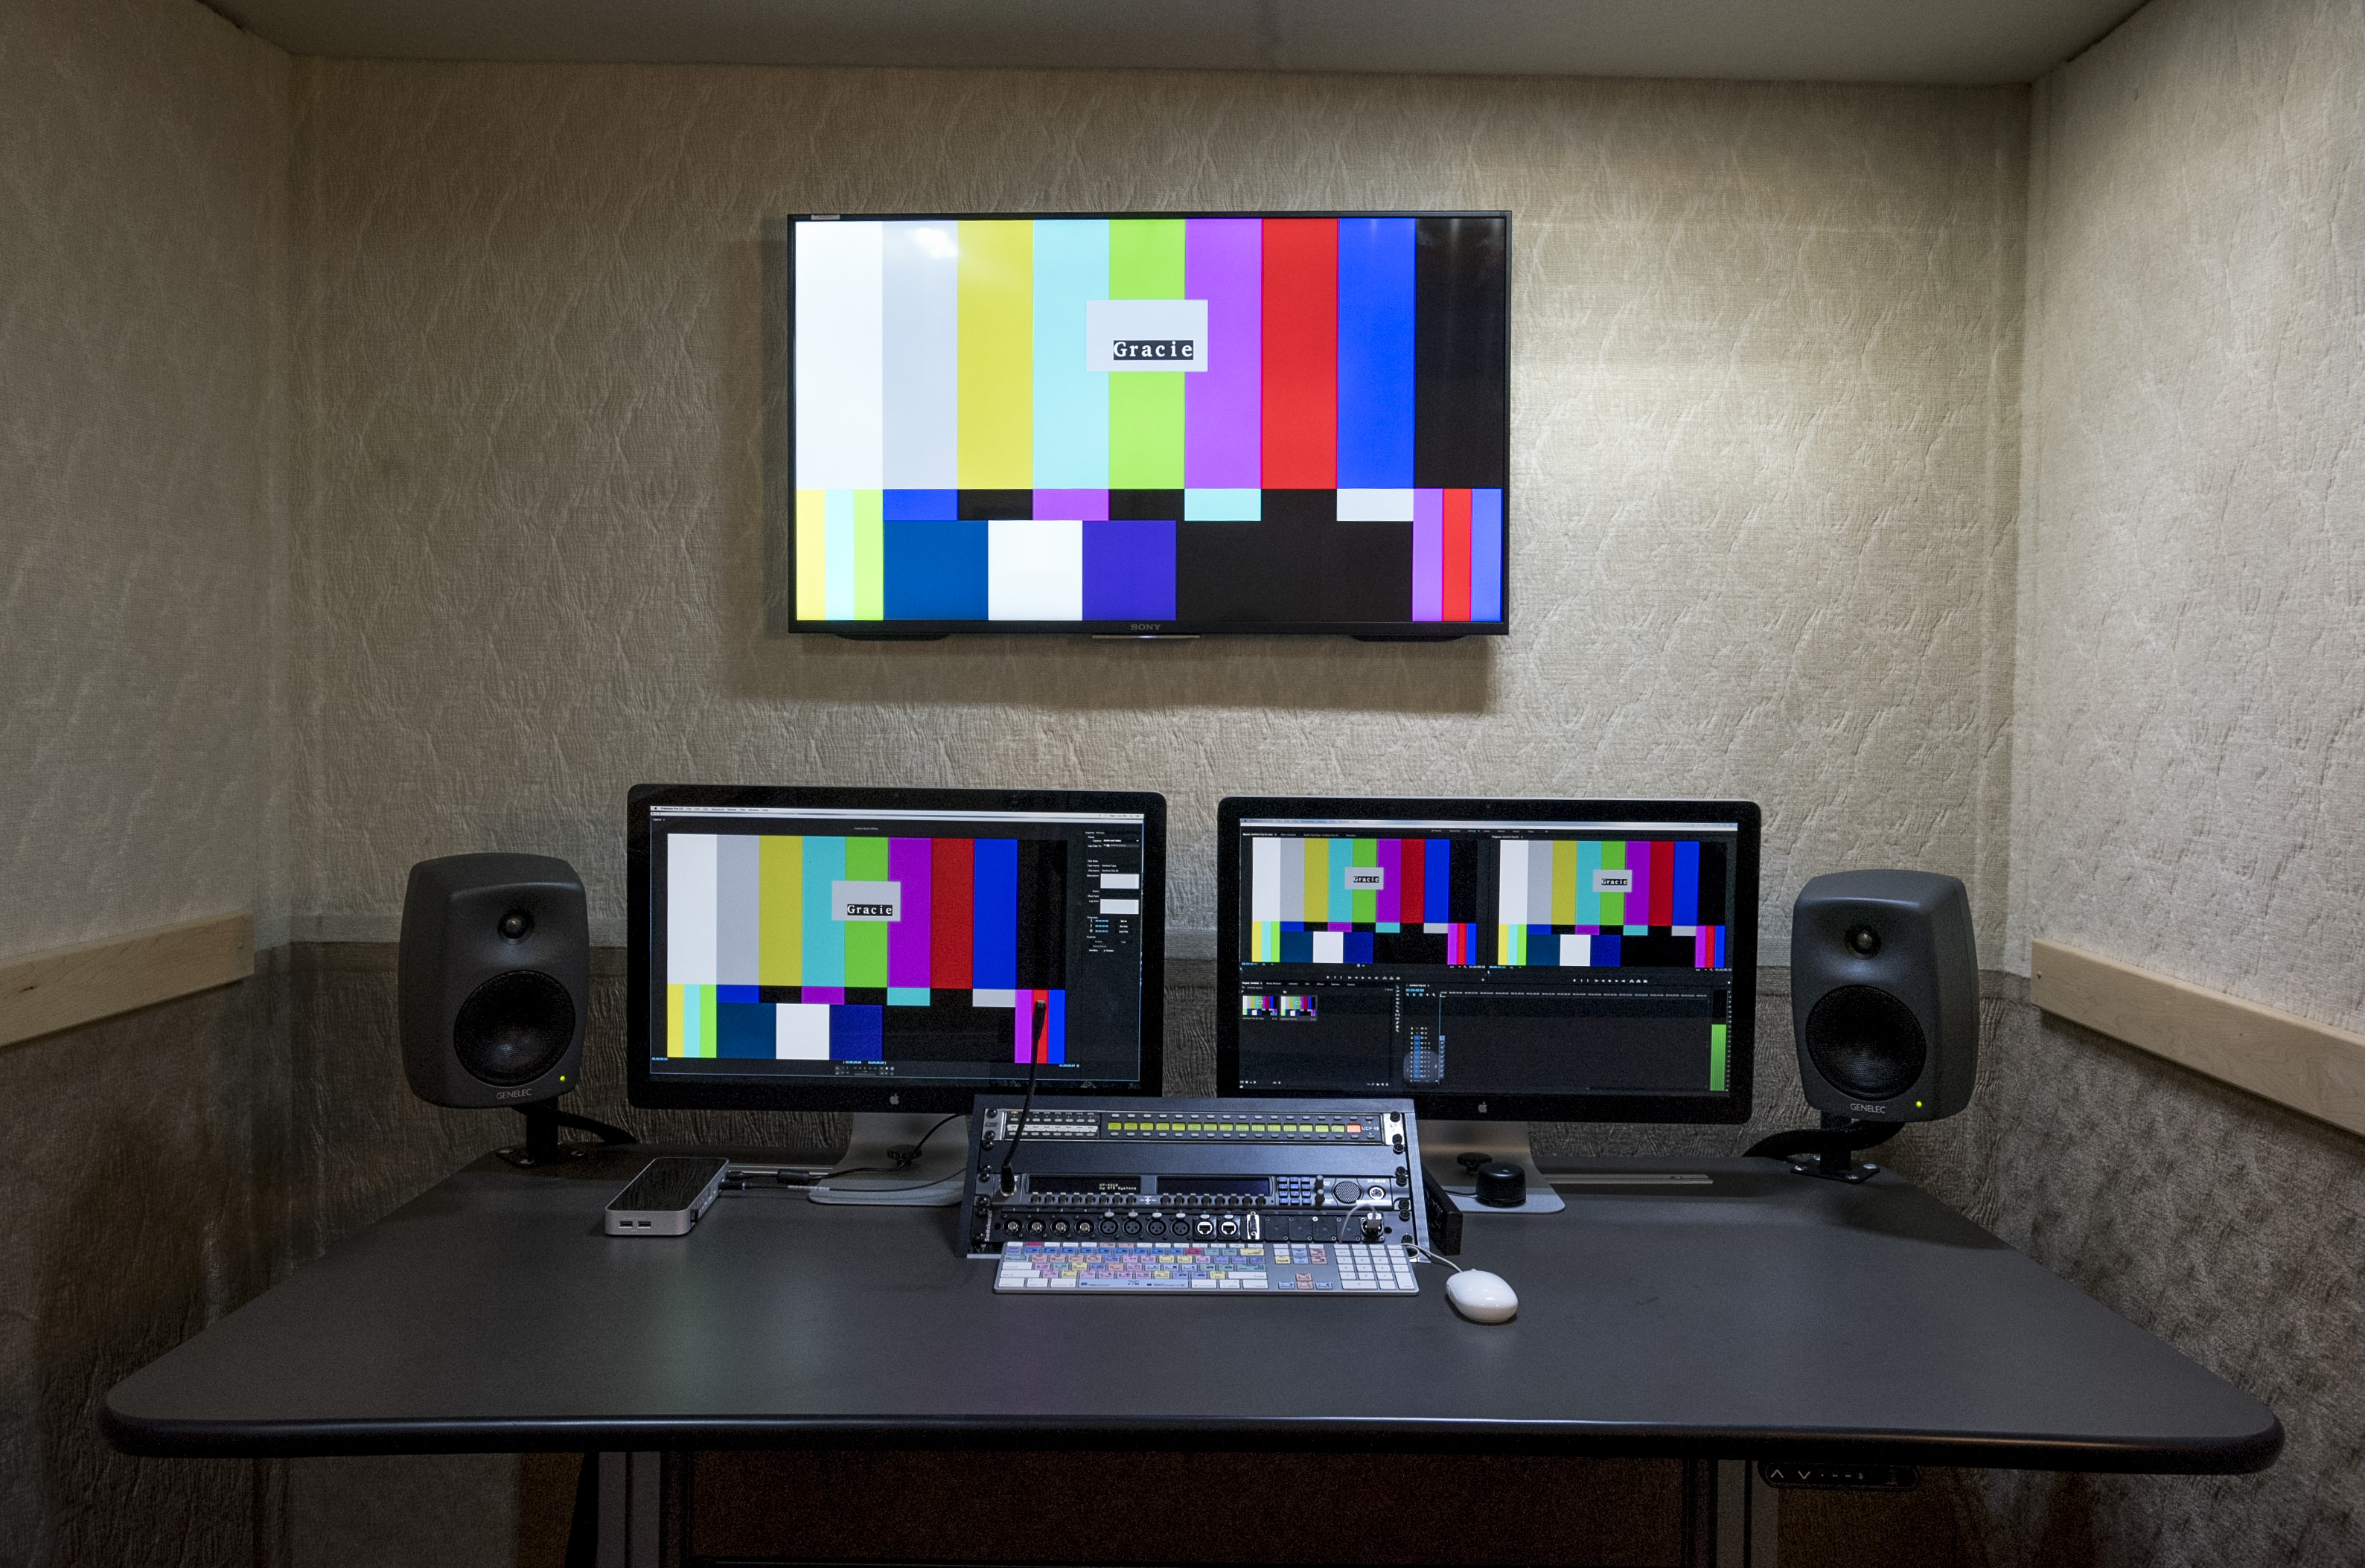 Gracie's 64-channel Avid Pro Tools audio editing system